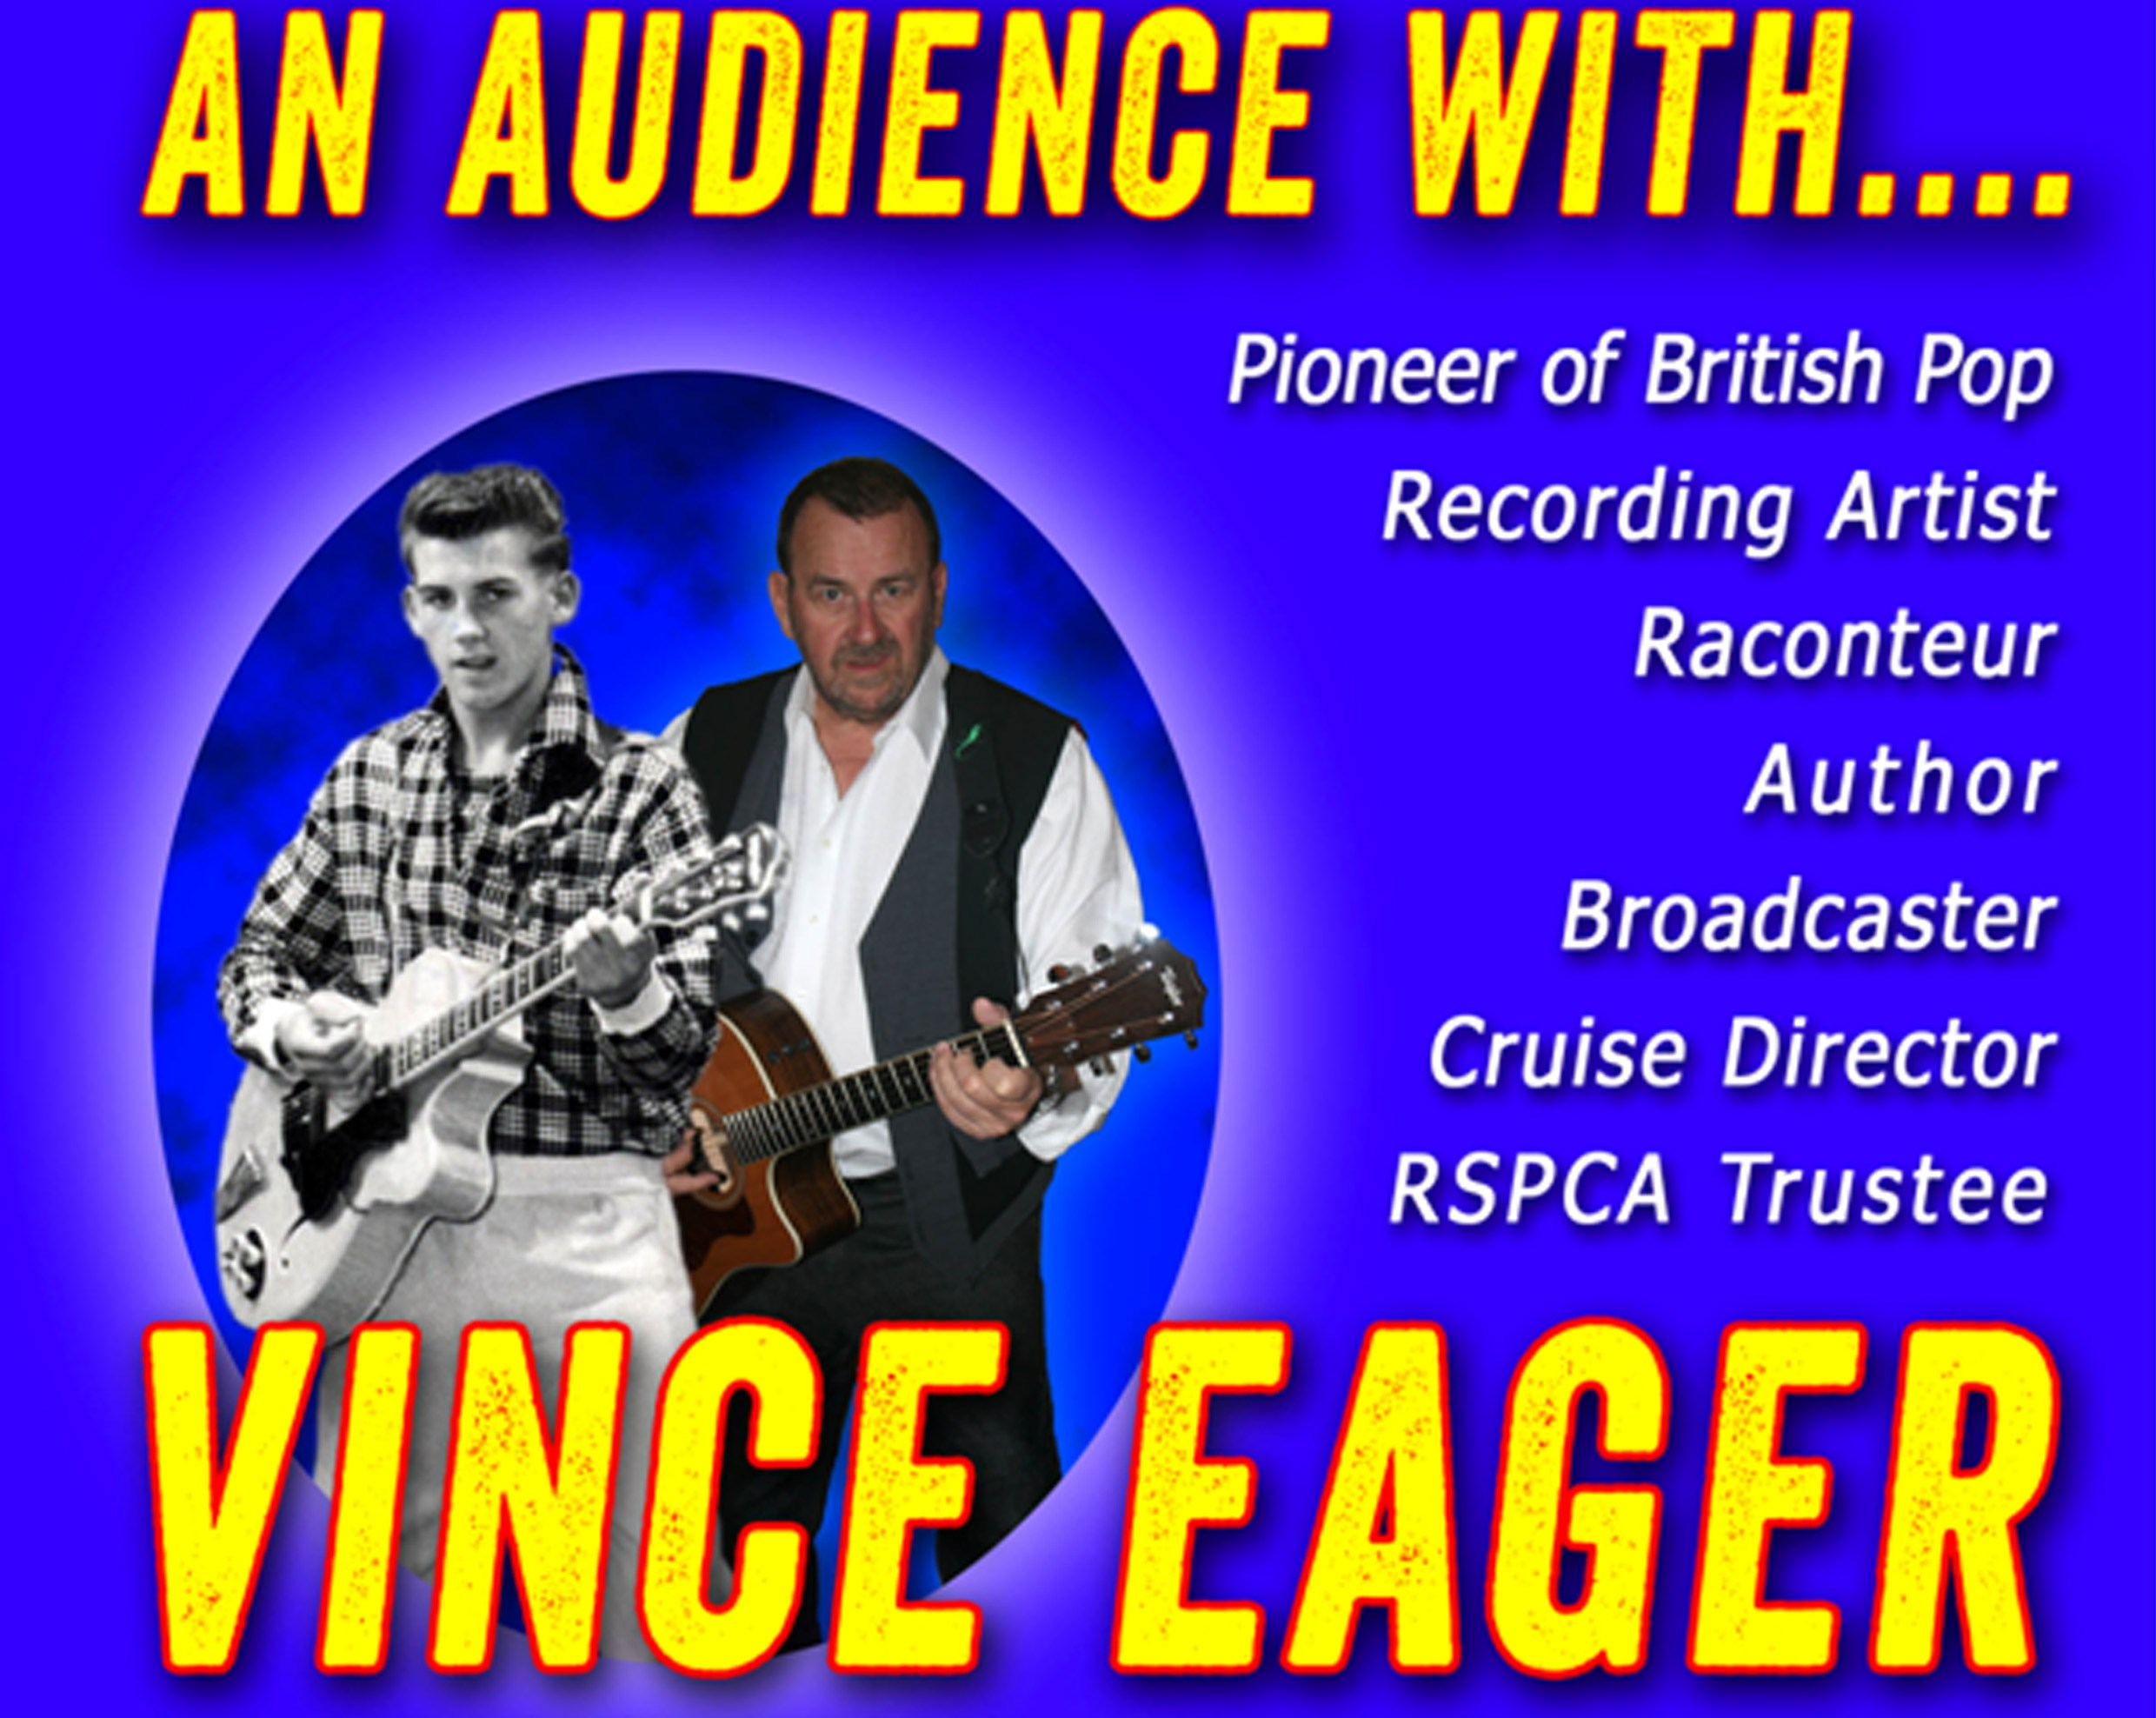 An Audience With Vince Eager